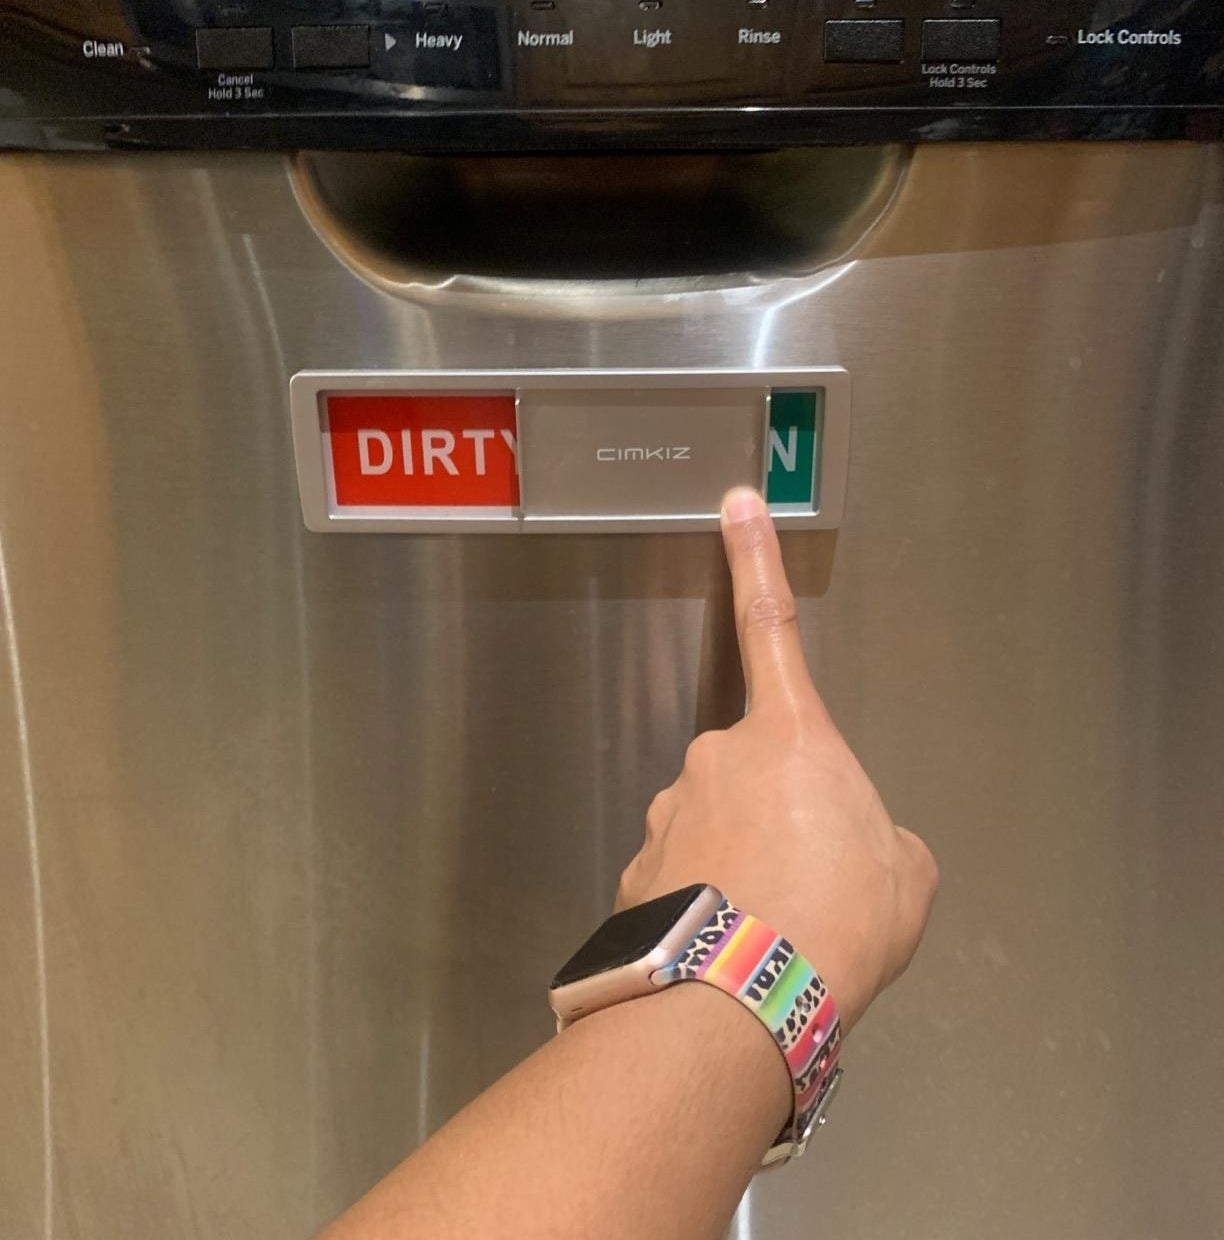 A person touching the dishwasher magnet